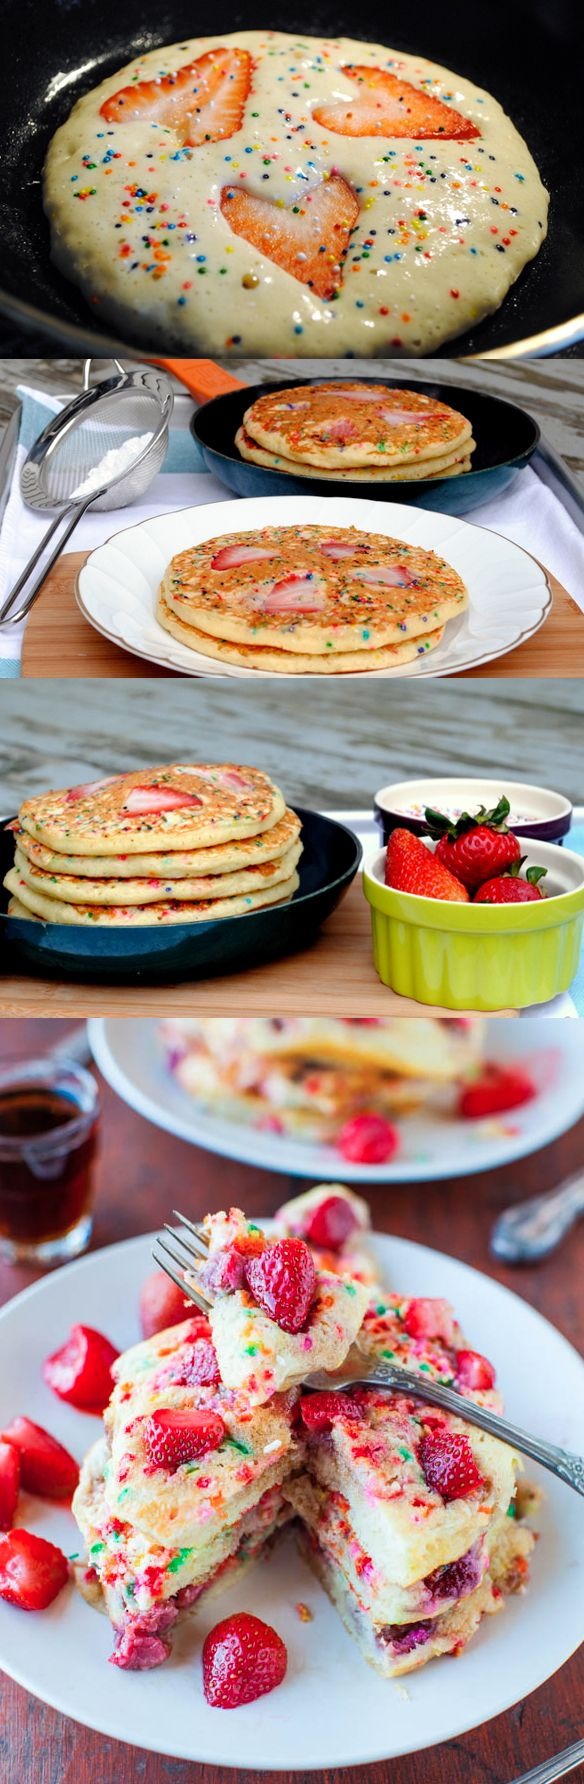 strawberry sprinkles funfetti pancakes breakfast sugar easy crepe better baking bible blog www.escherpe.com